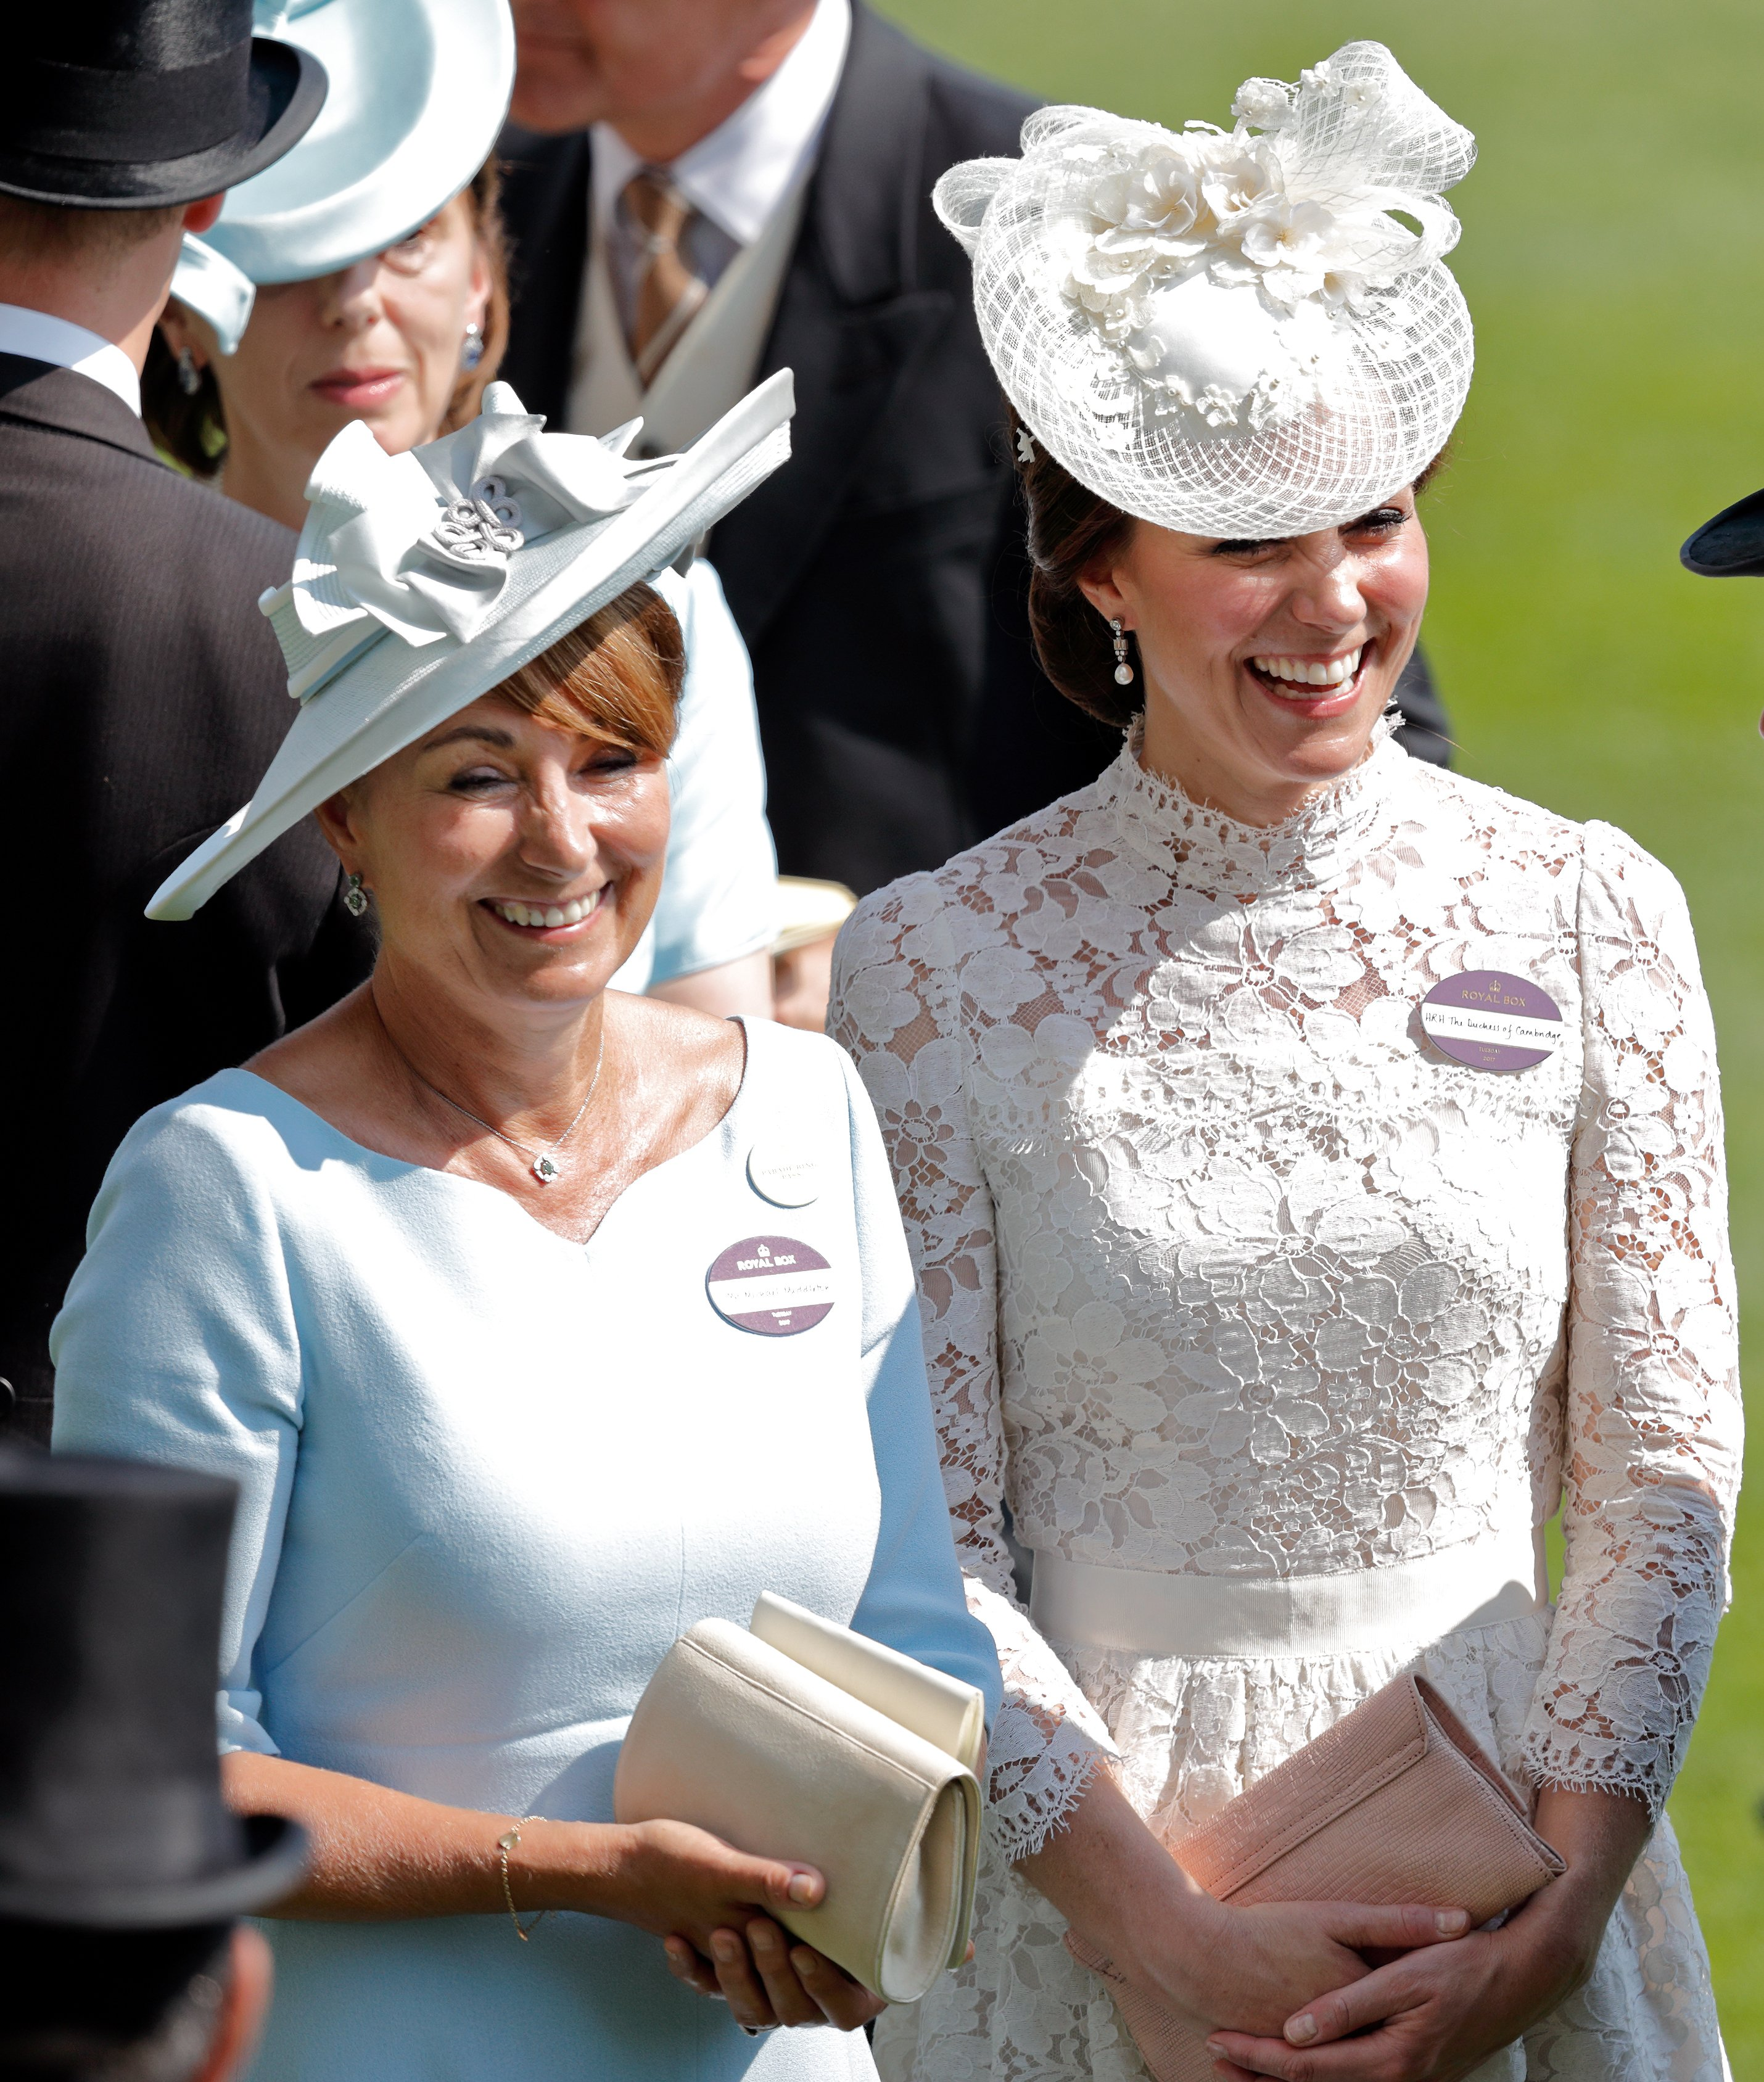 The Duchess of Cambridge and her mother Carole Middleton attend Ascot Racecourse on June 20, 2017 in Ascot, England | Photo: Getty Images